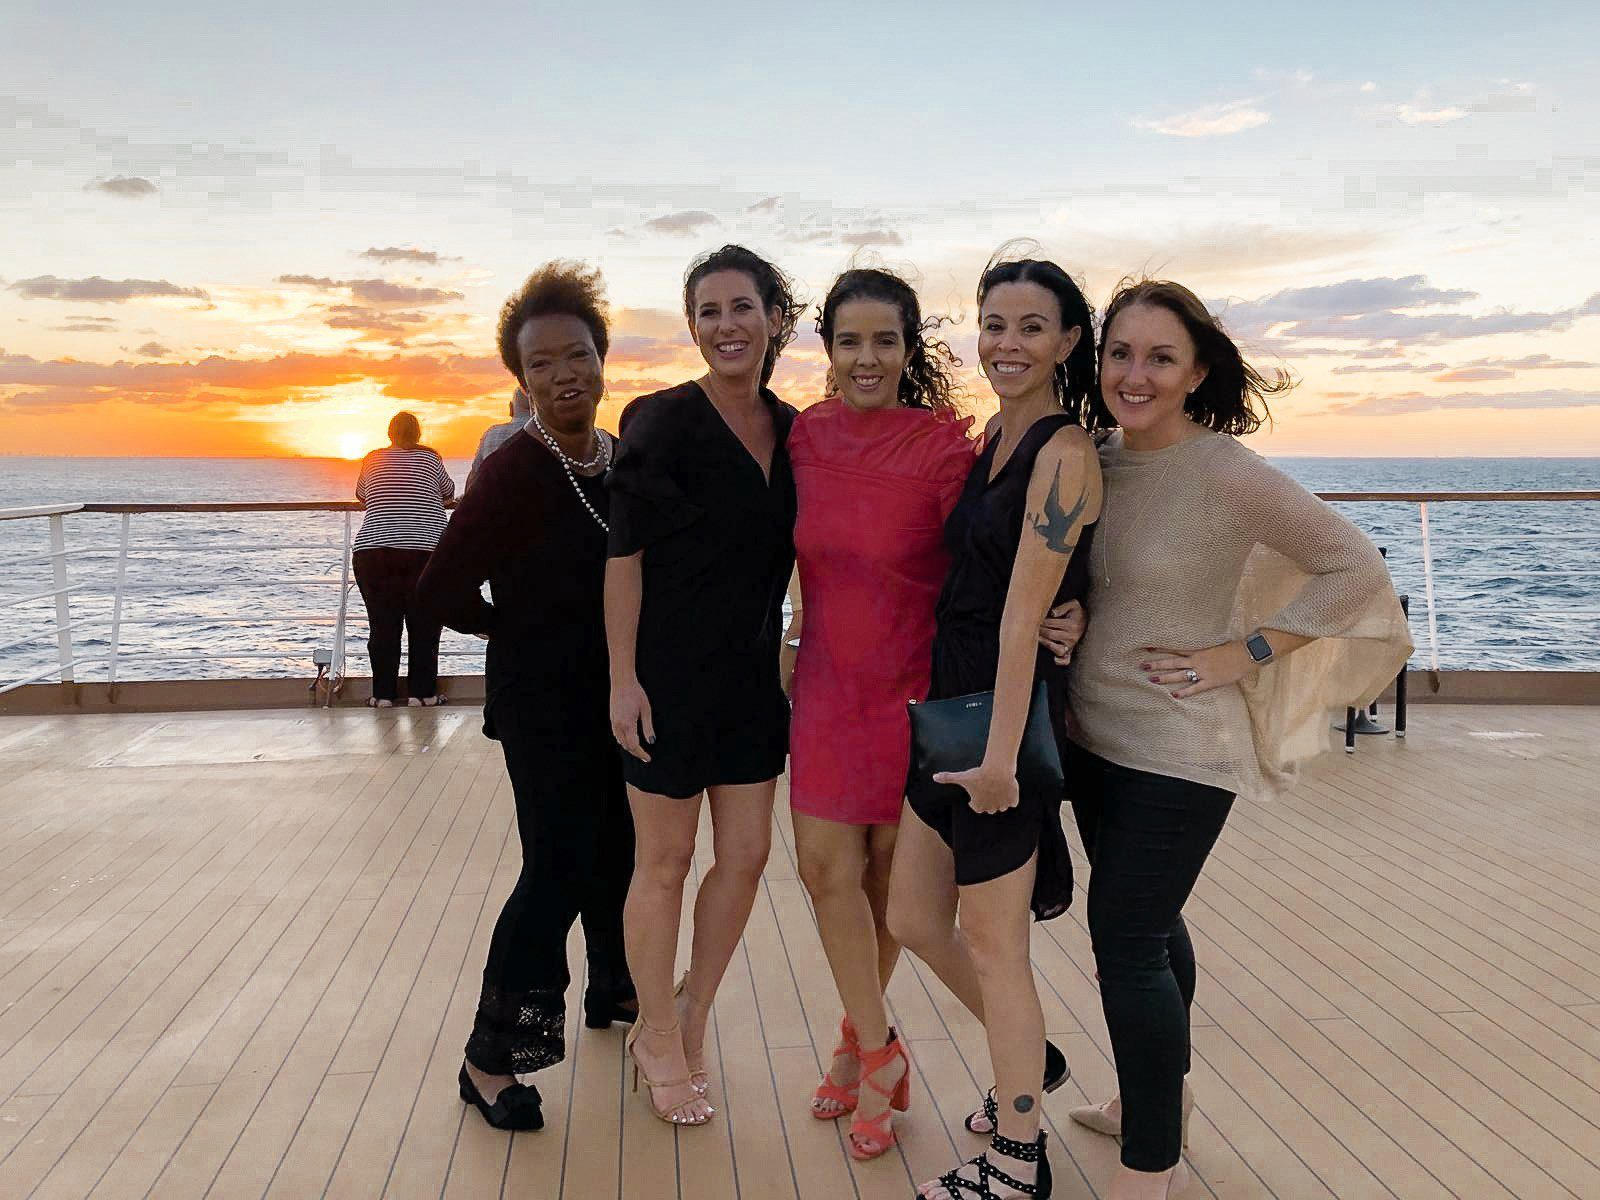 5 Amazing Reason to go on a Holland America cruise with Oprah Magazine by popular US lifestyle blog Fresh Mommy Blog: image of 5 women in cocktail dresses standing on the Holland America cruise ship deck at sunset